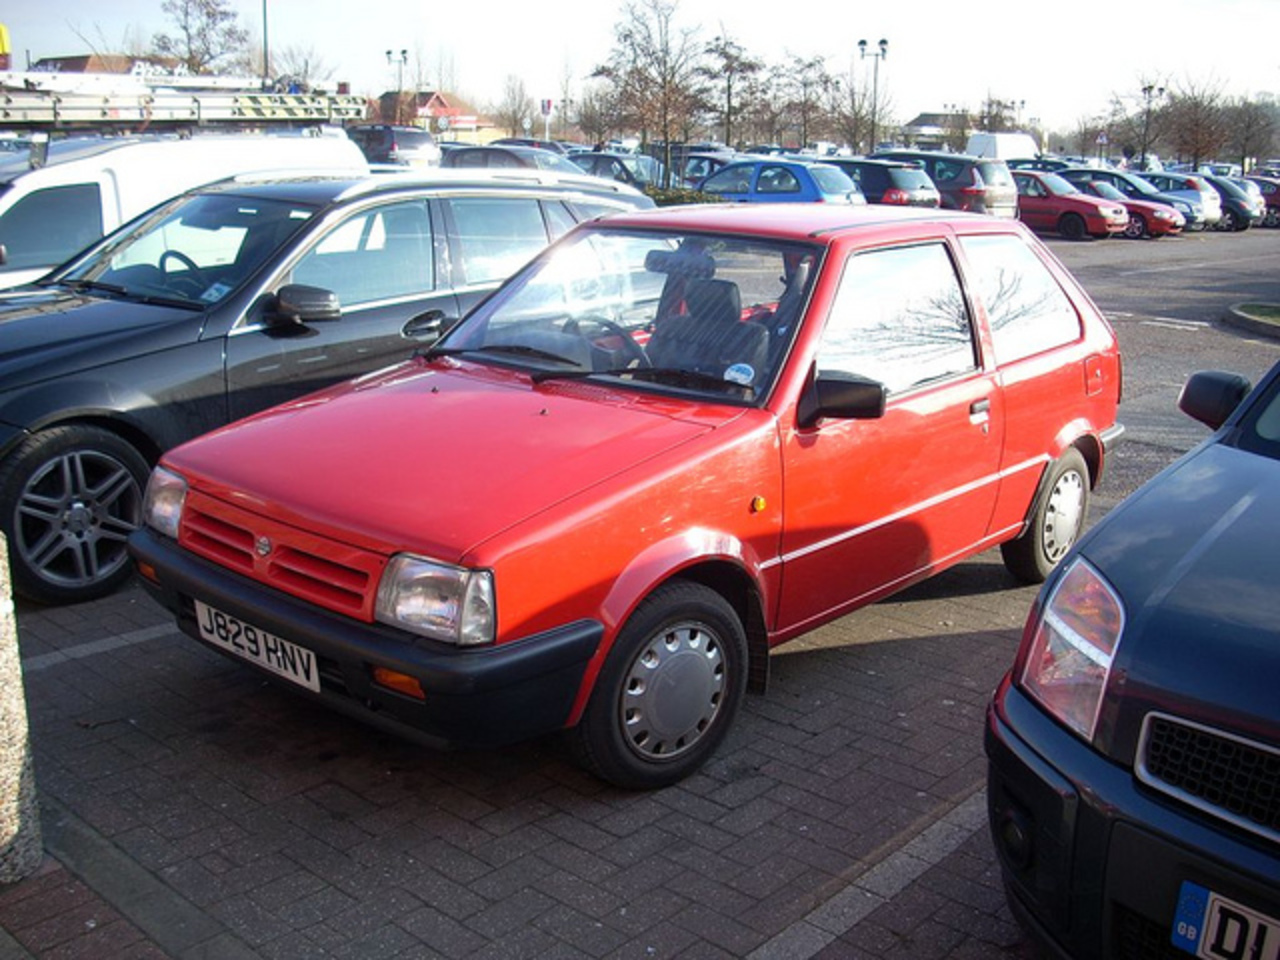 1991 Nissan Micra 1.0 LS | Flickr - Photo Sharing!